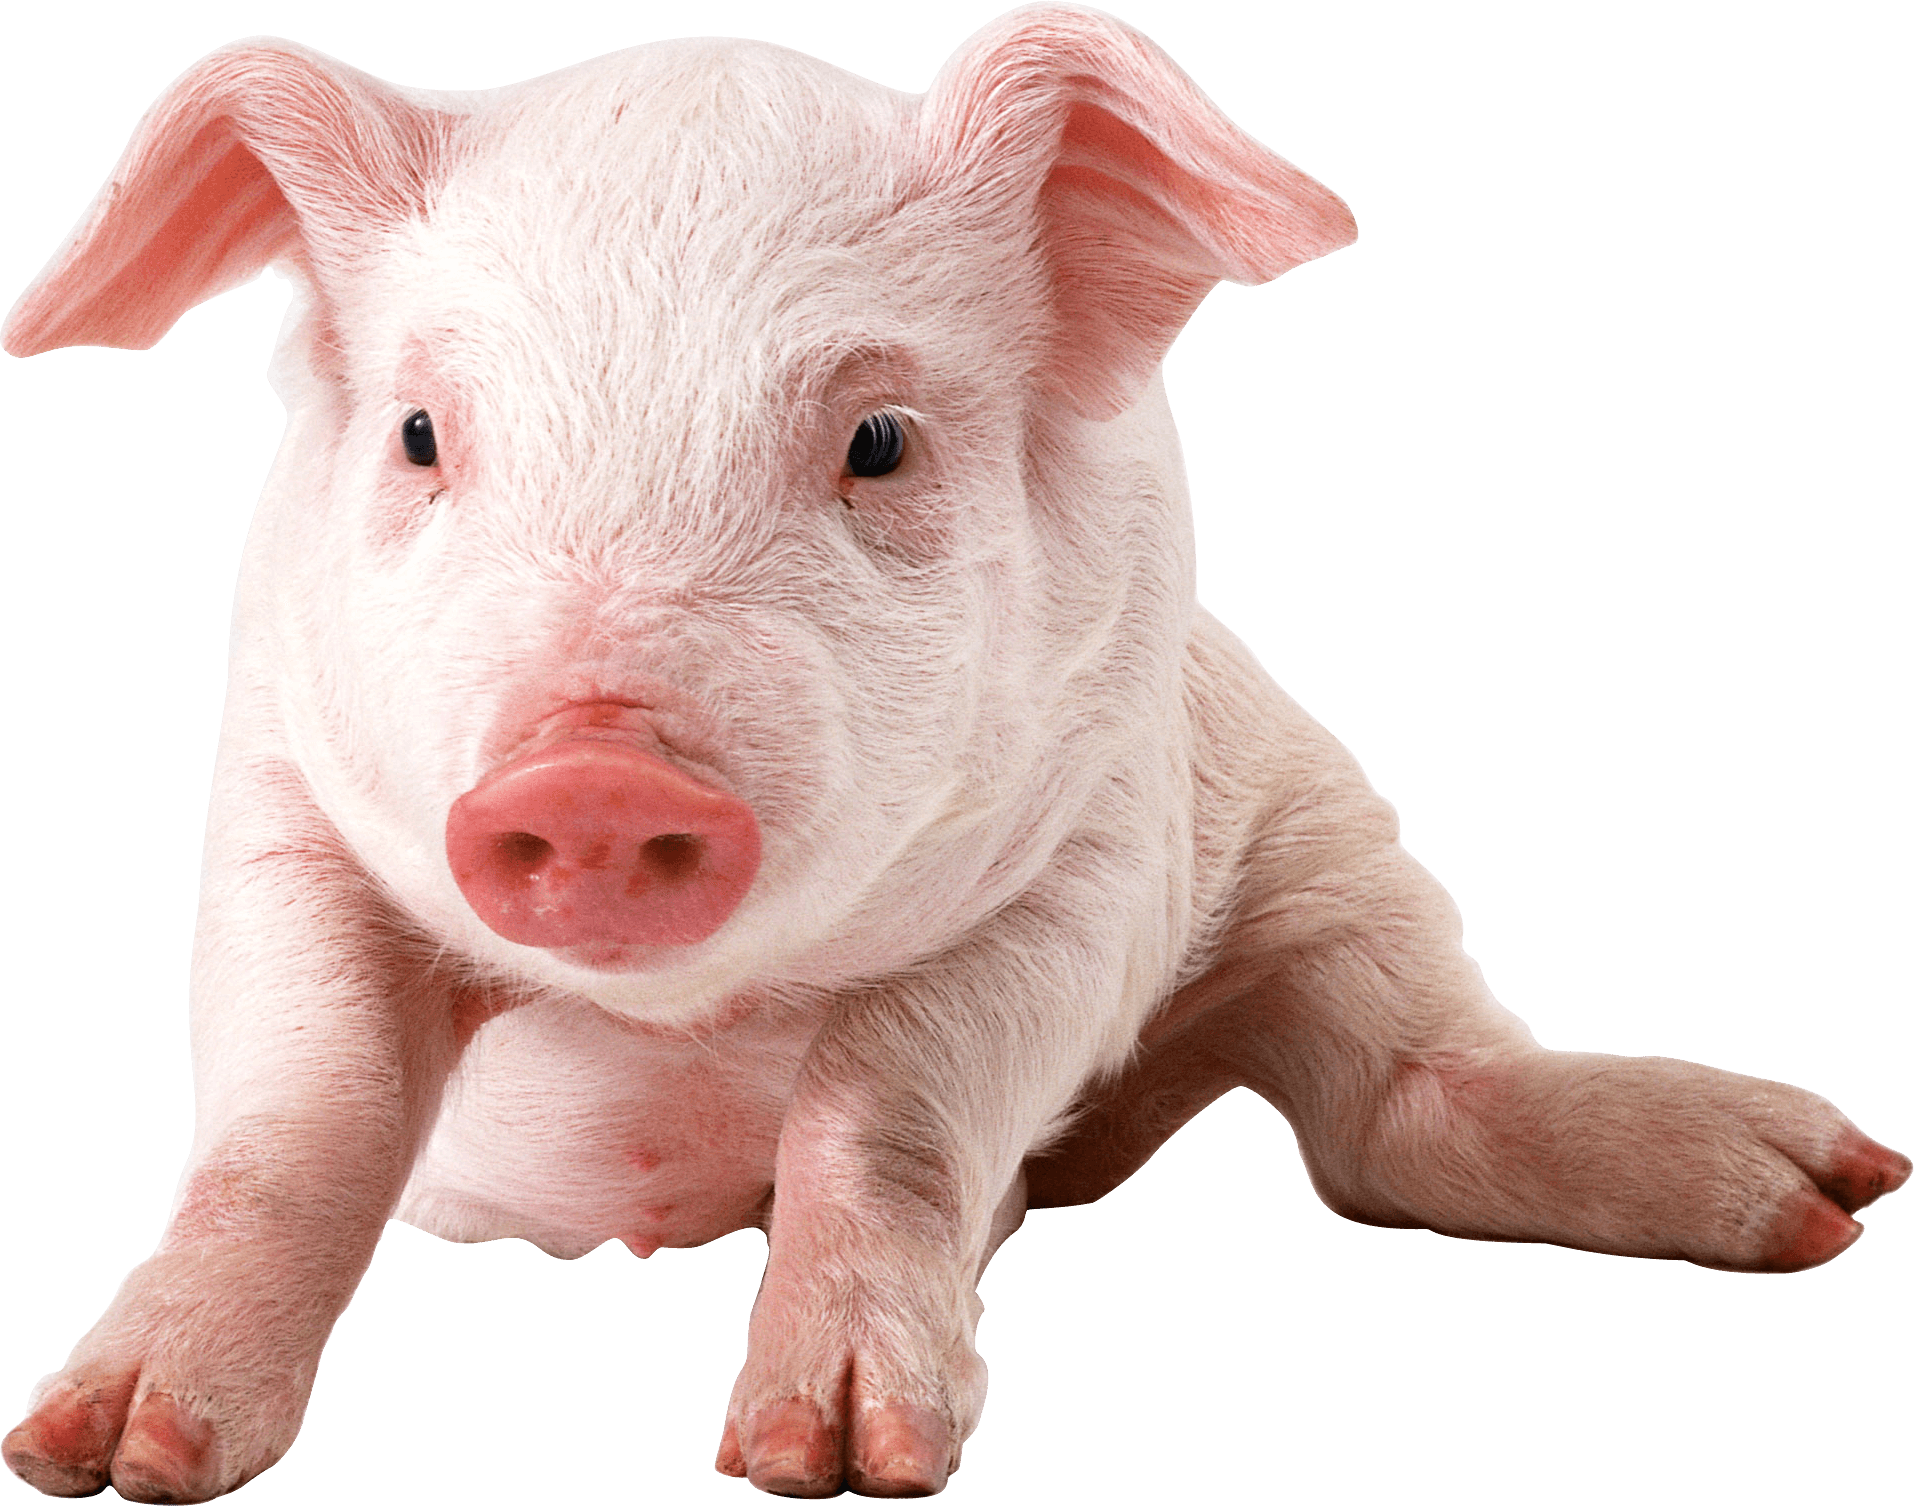 Baby Pig Sitting - Pig HD PNG